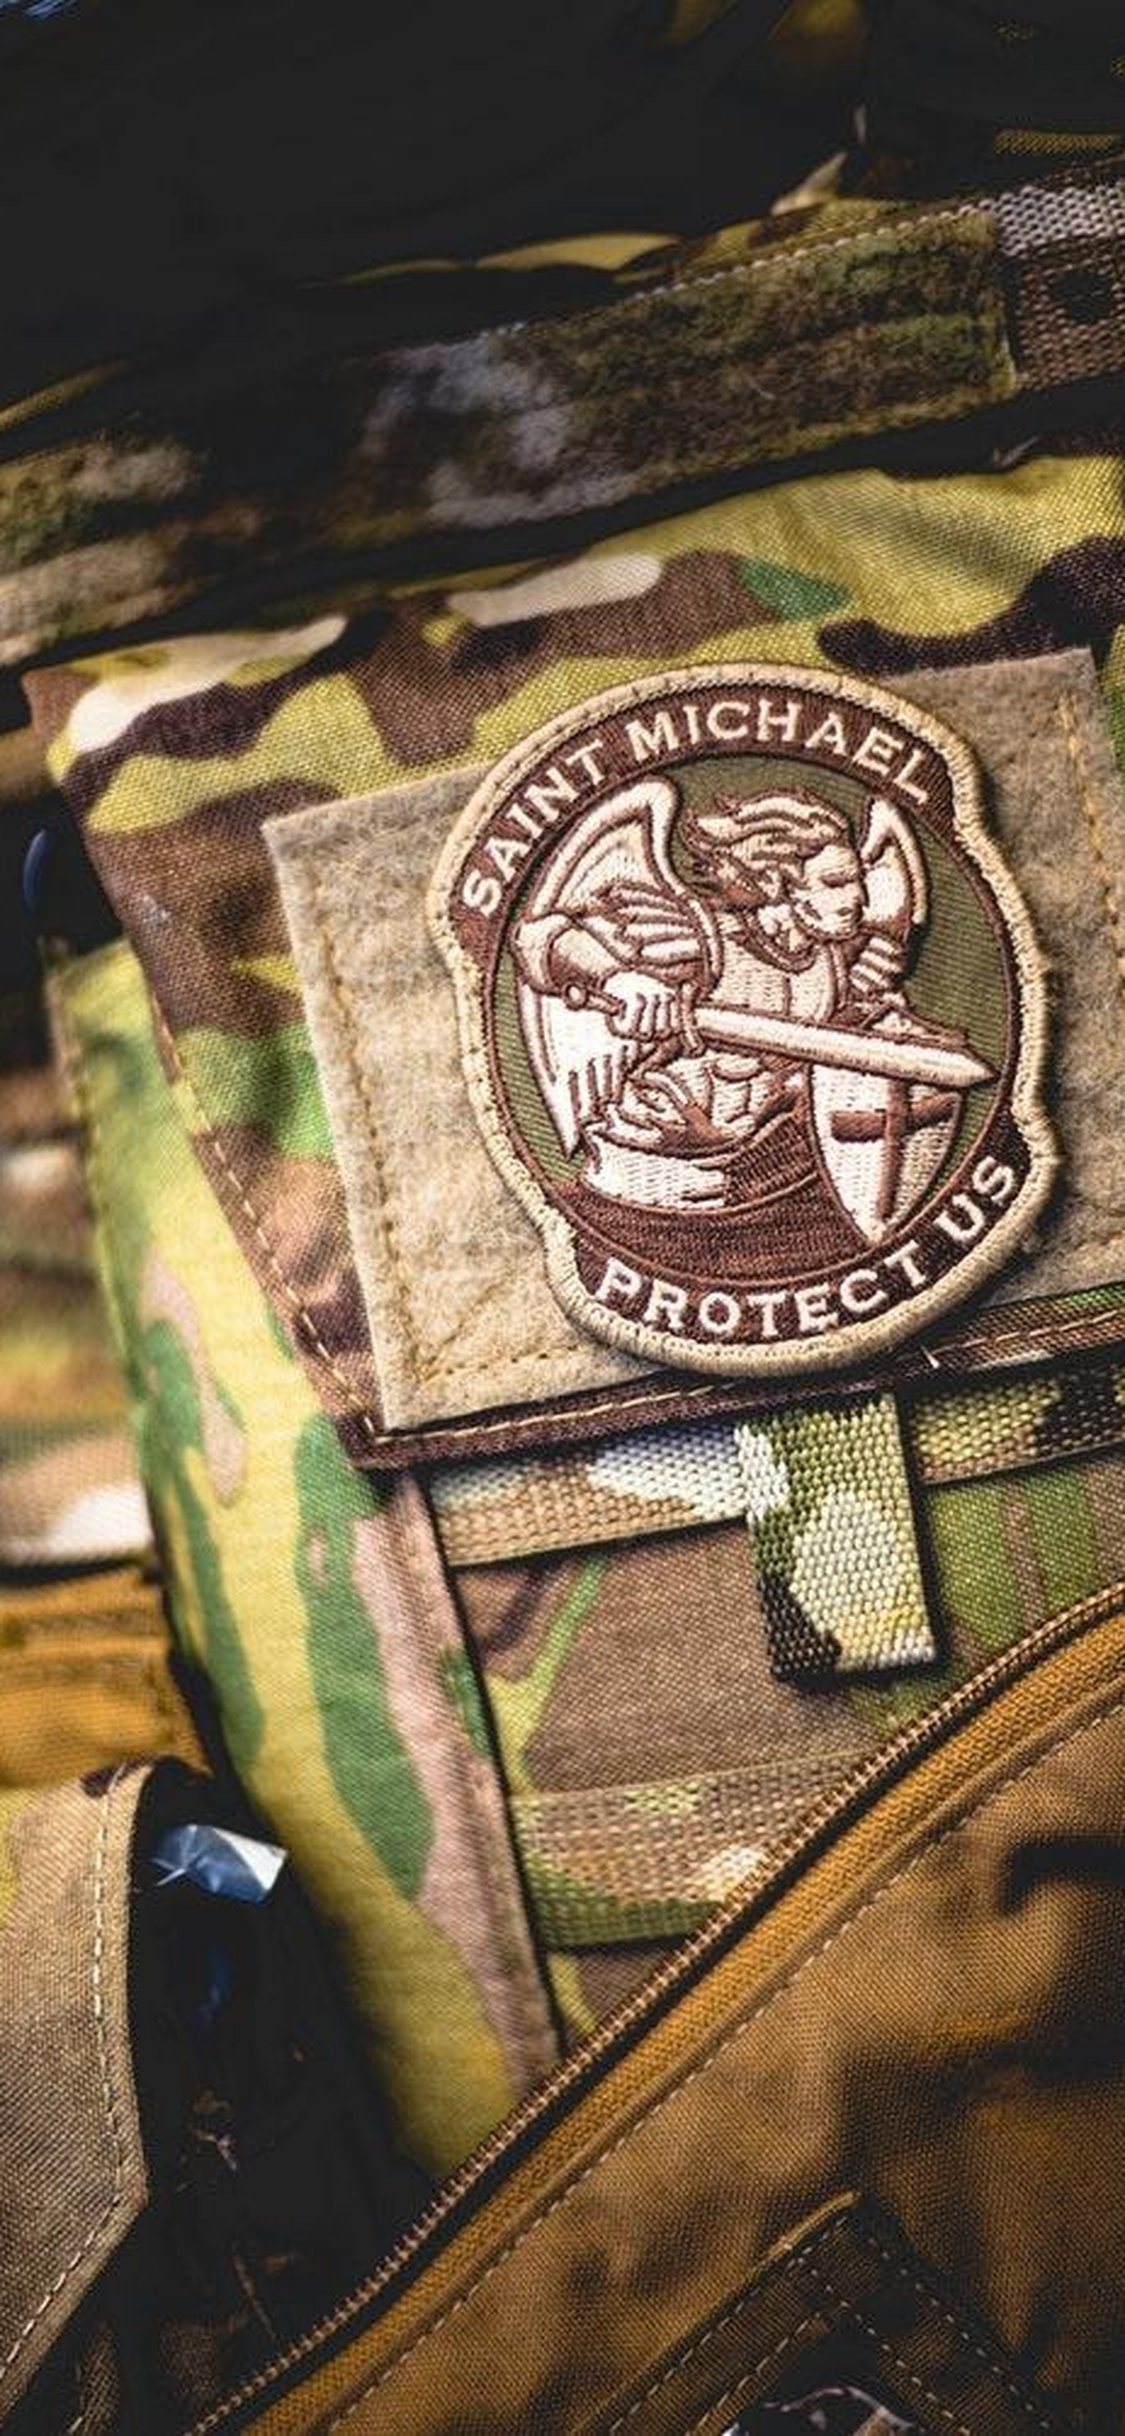 1125x2436  iPhone X Sain Michael Uniform from US Army Wallpaper : Army  Wallpaper for Phone &